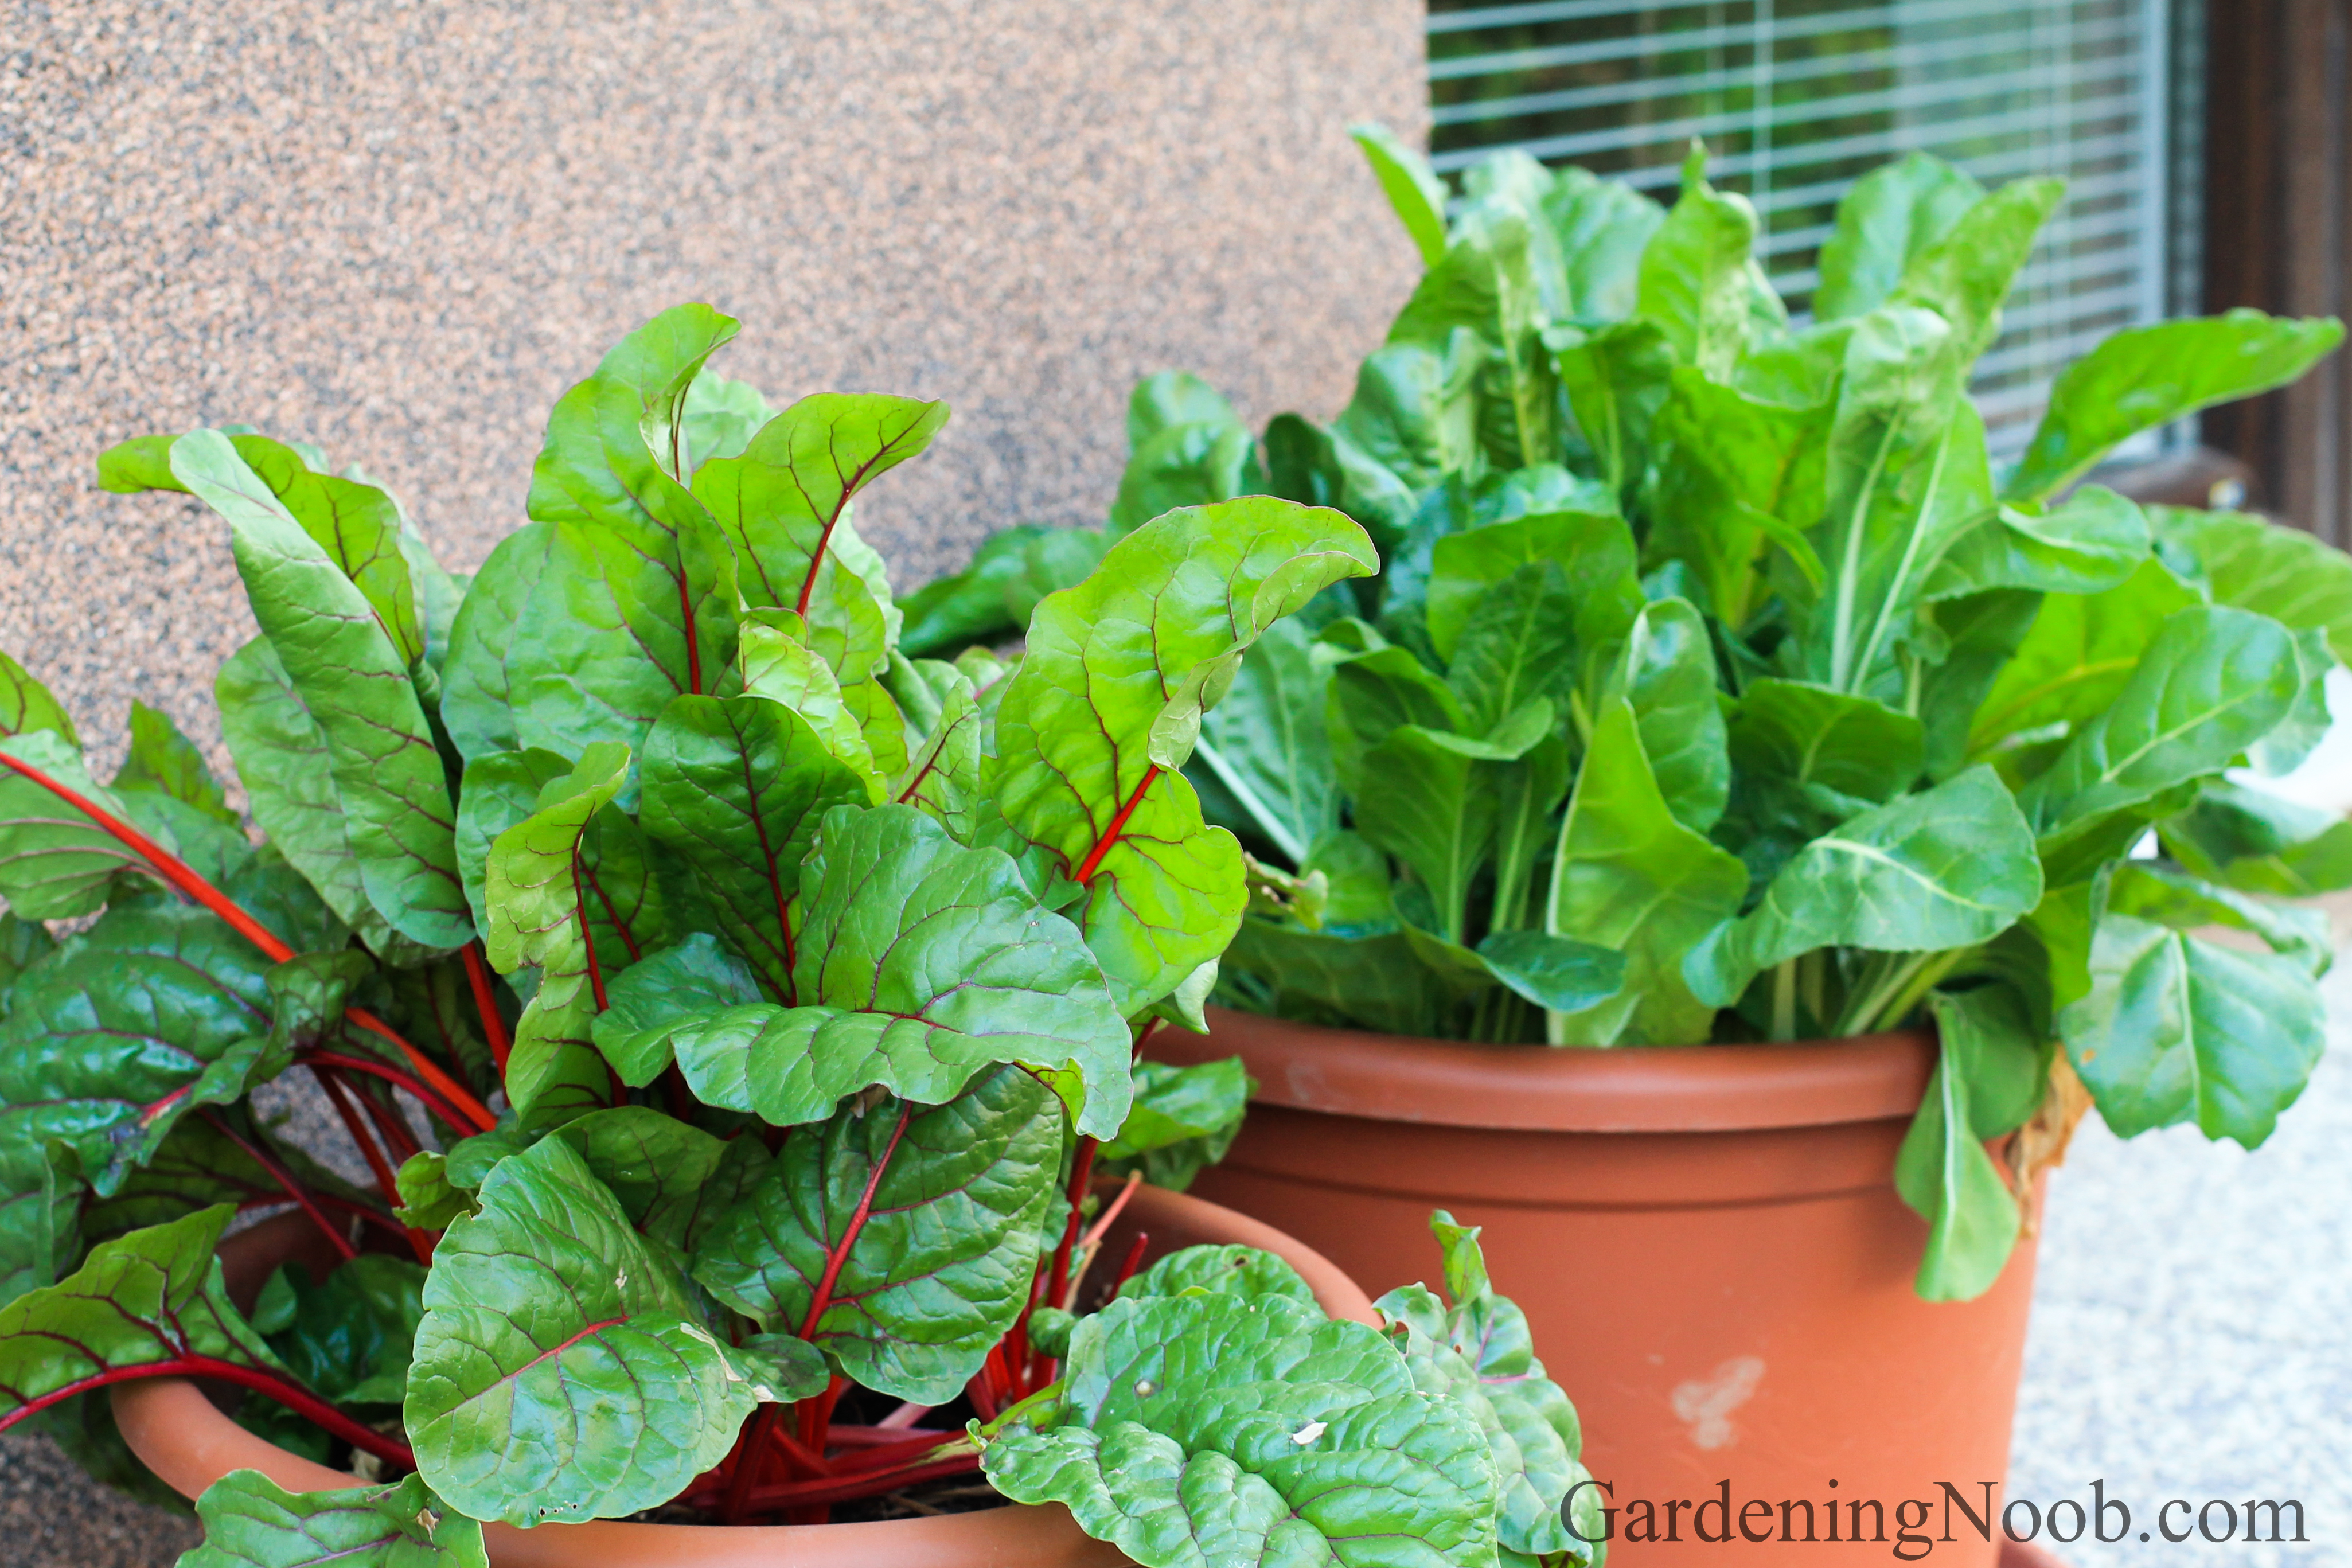 Chard is edible as well as ornamental...